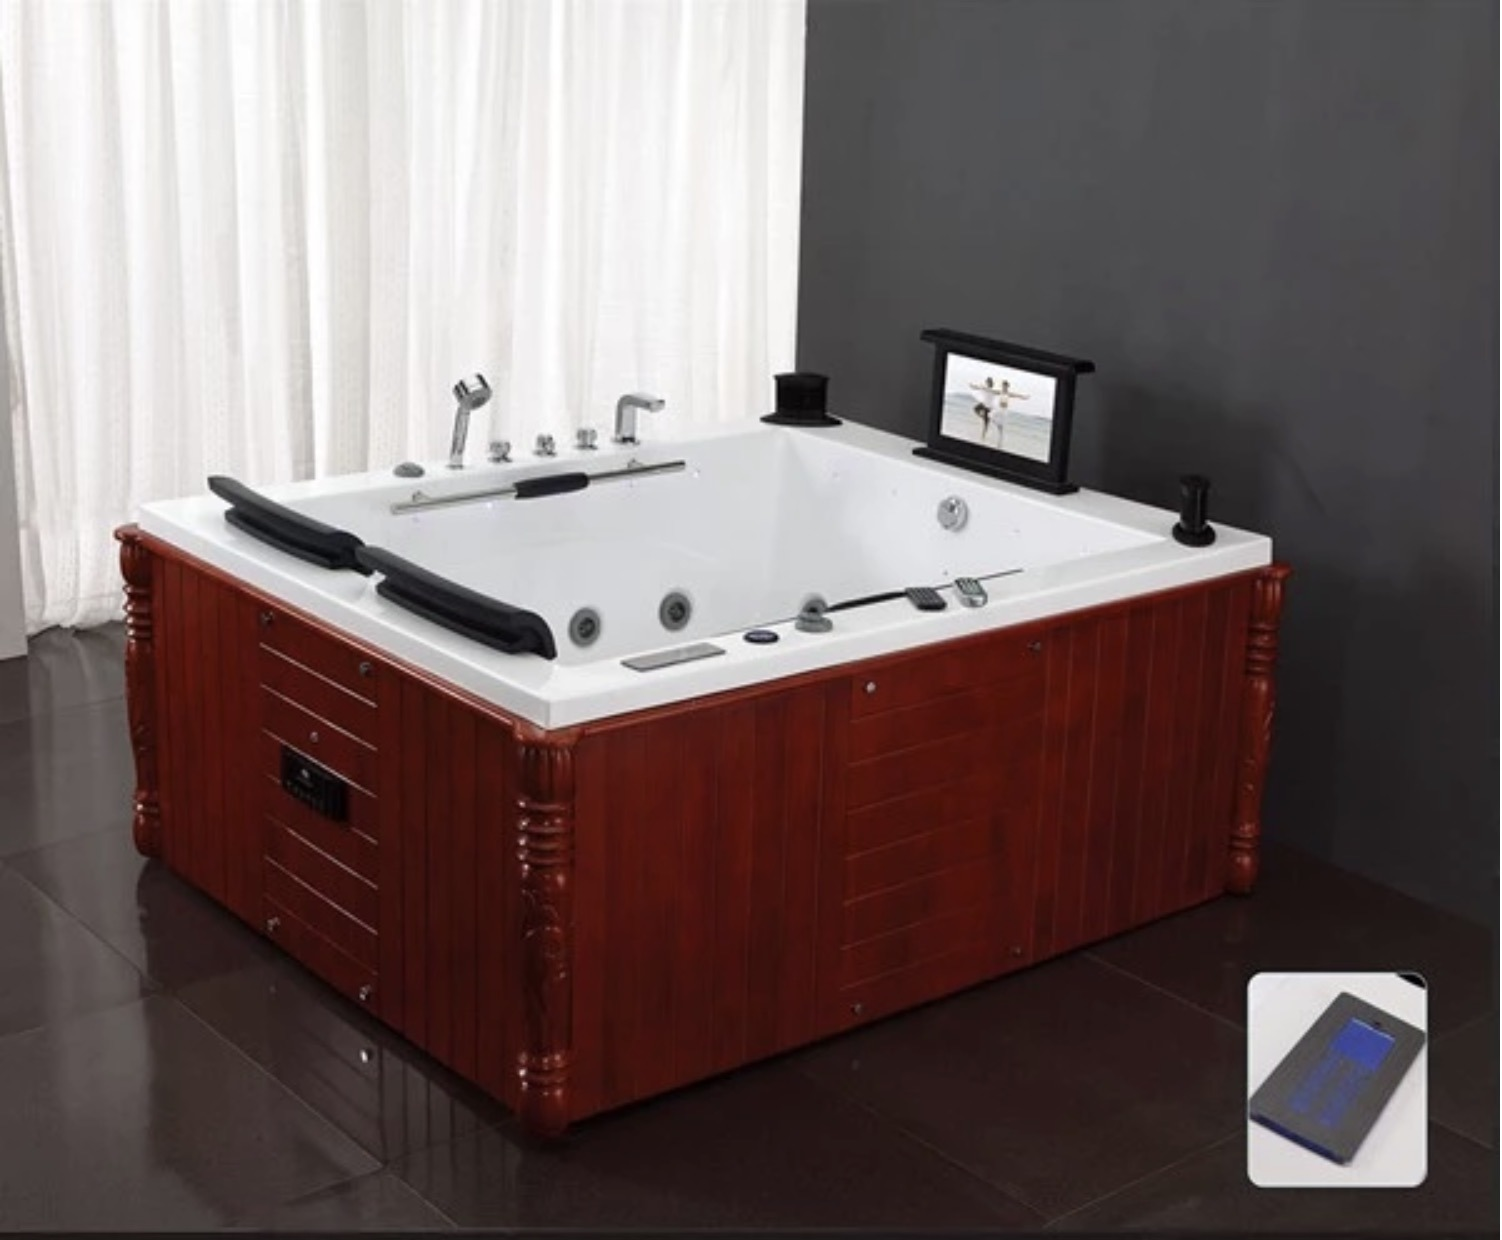 China Wooden Look Apron Luxury 2 Person Home Personal Whirlpool Bestway Indoor Spa Bathtub China Spa Bathtub Indoor Bathtub